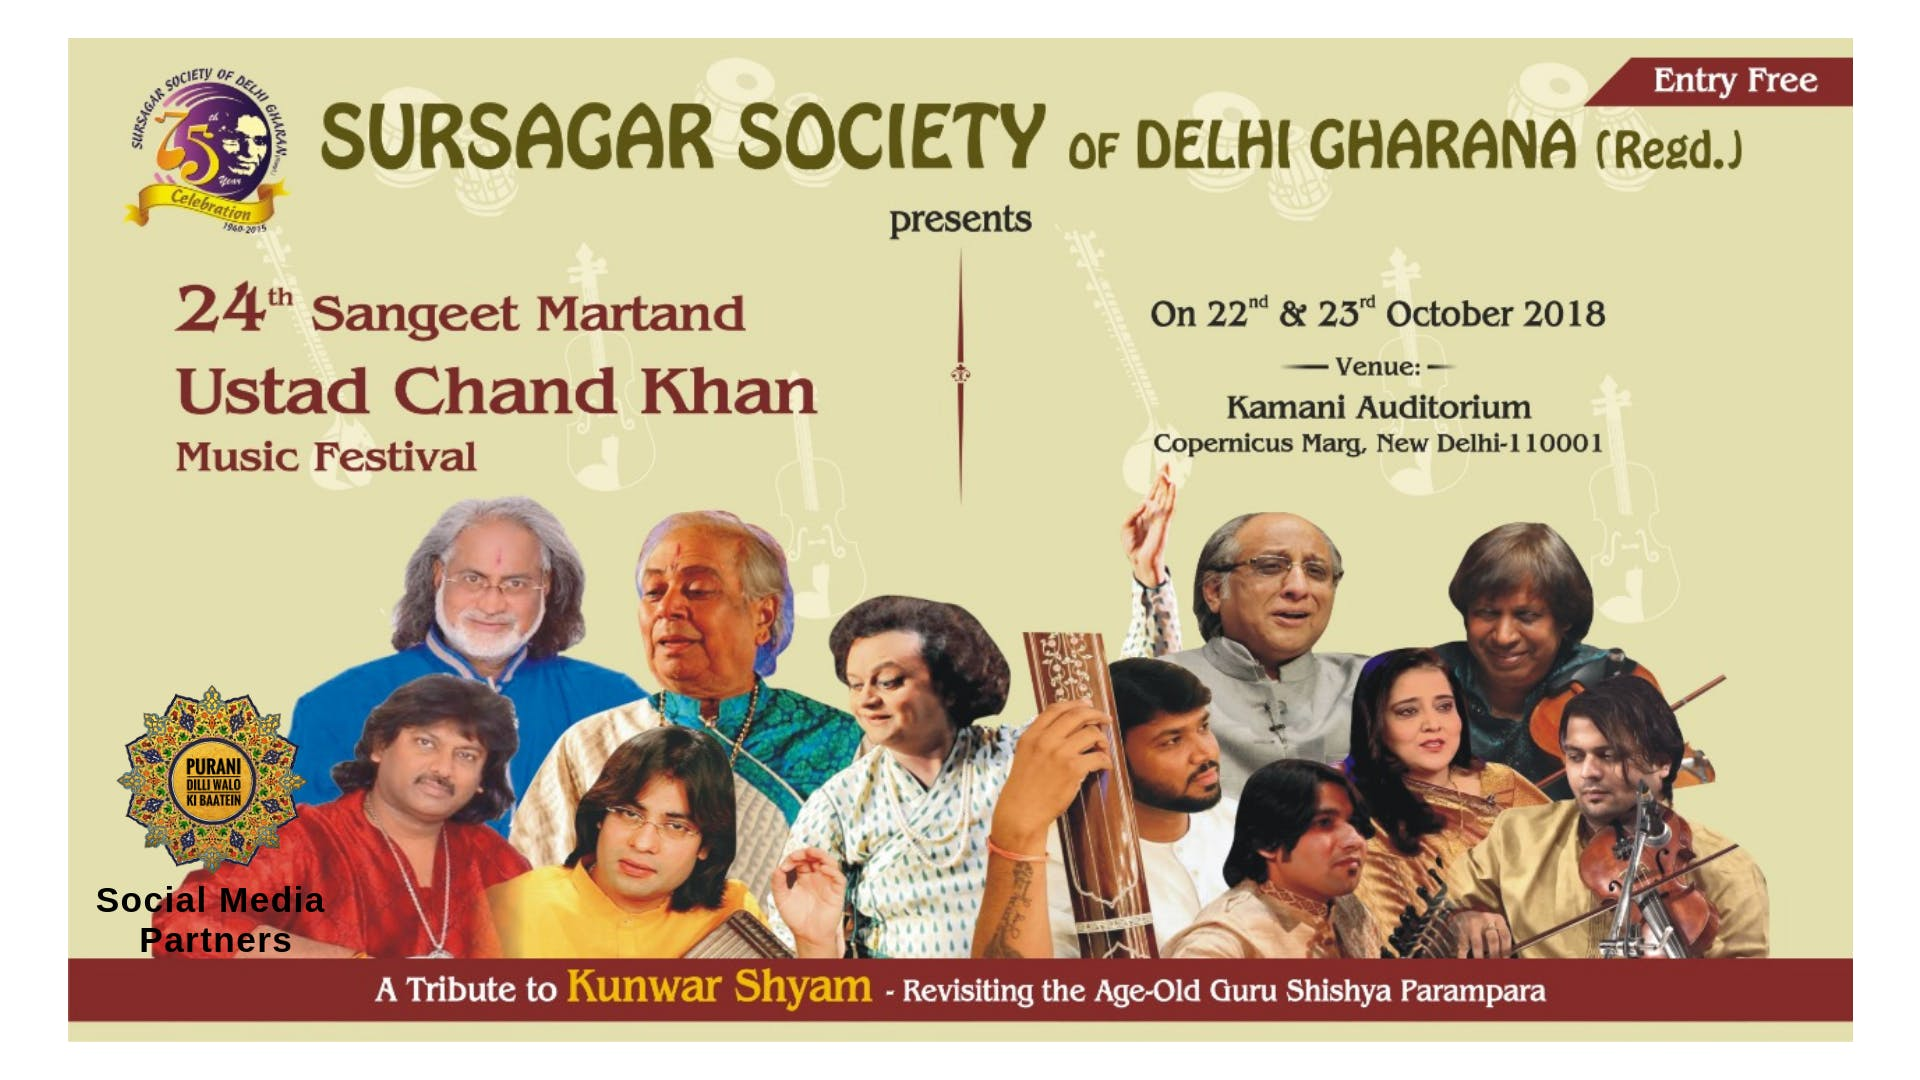 Music Festival: 24th Sangeet Martand Ustad Ch